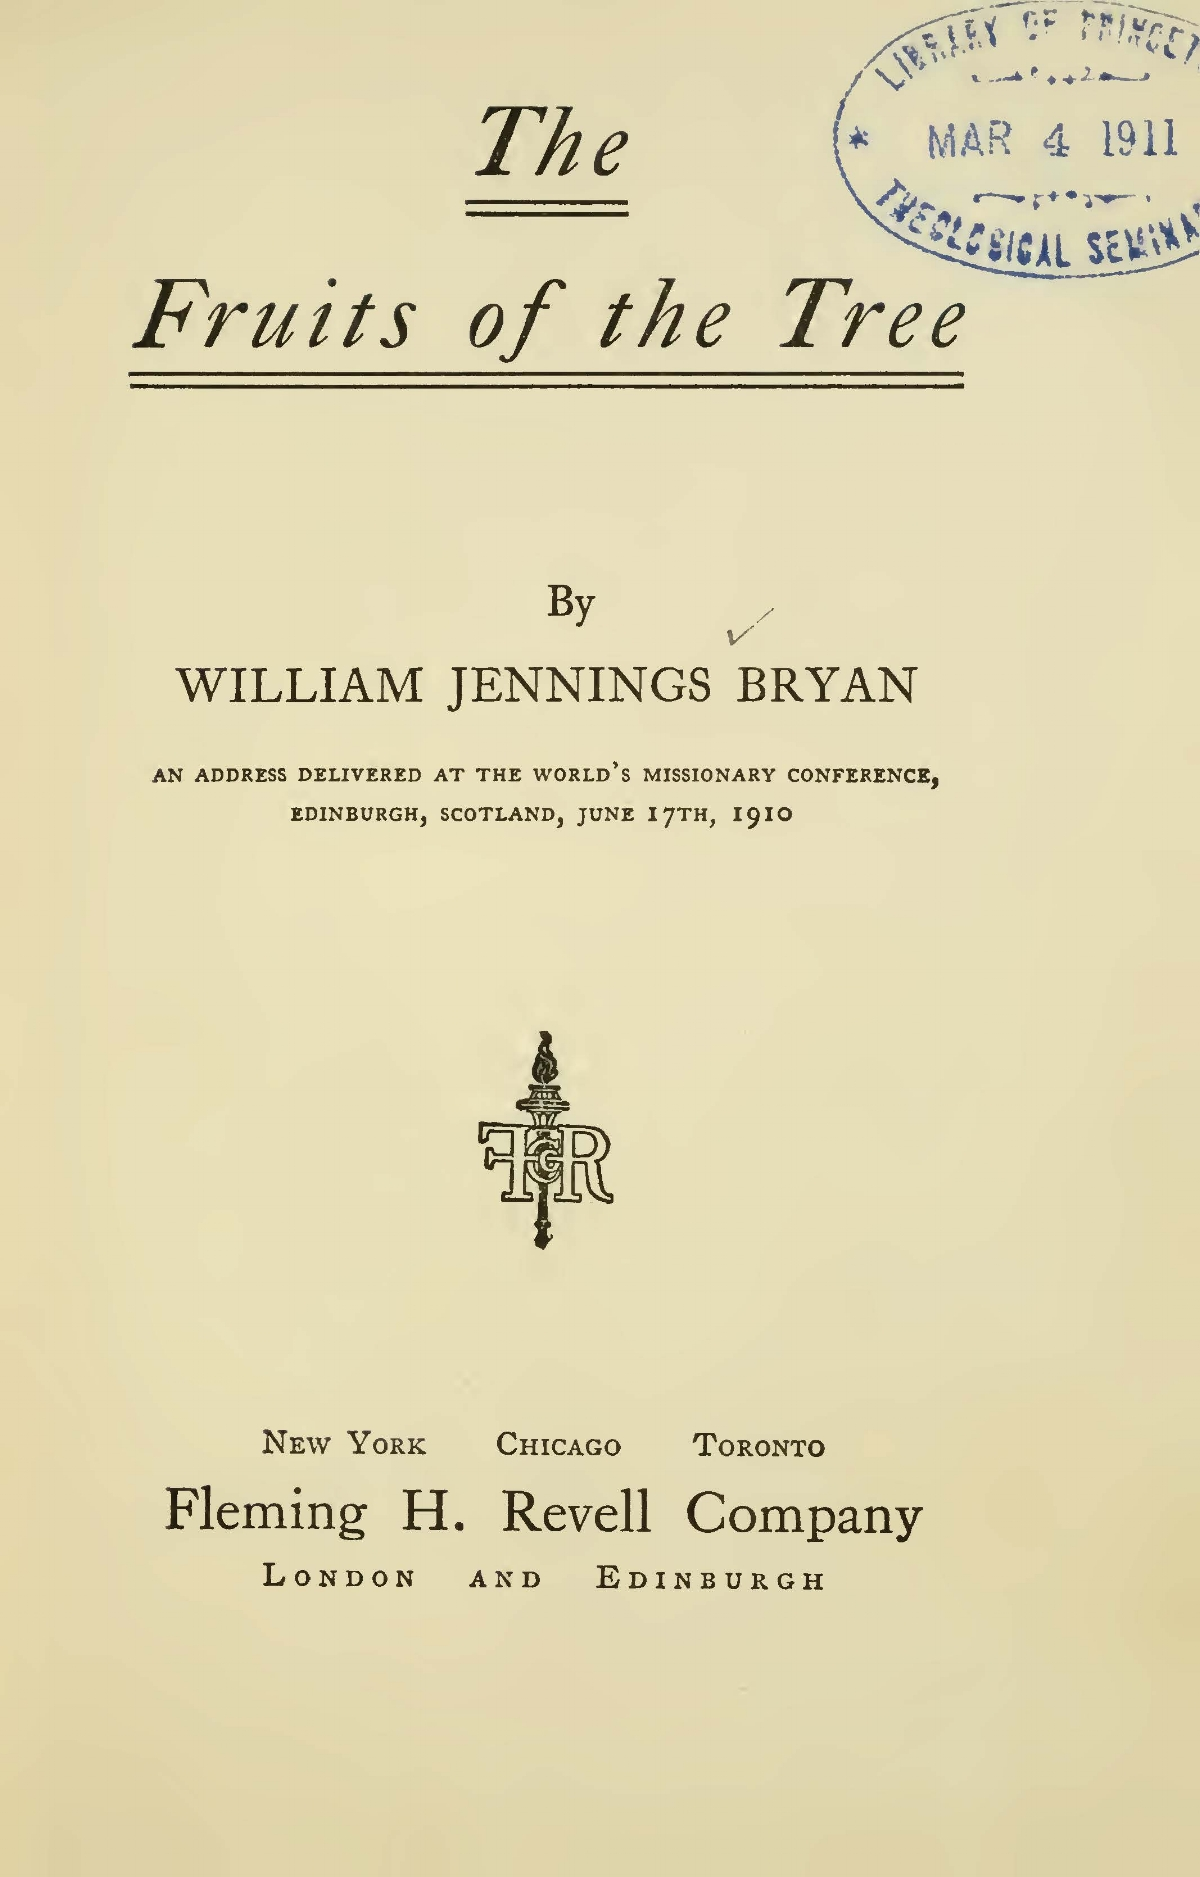 Bryan, Sr., William Jennings, The Fruits of the Tree Title Page.jpg